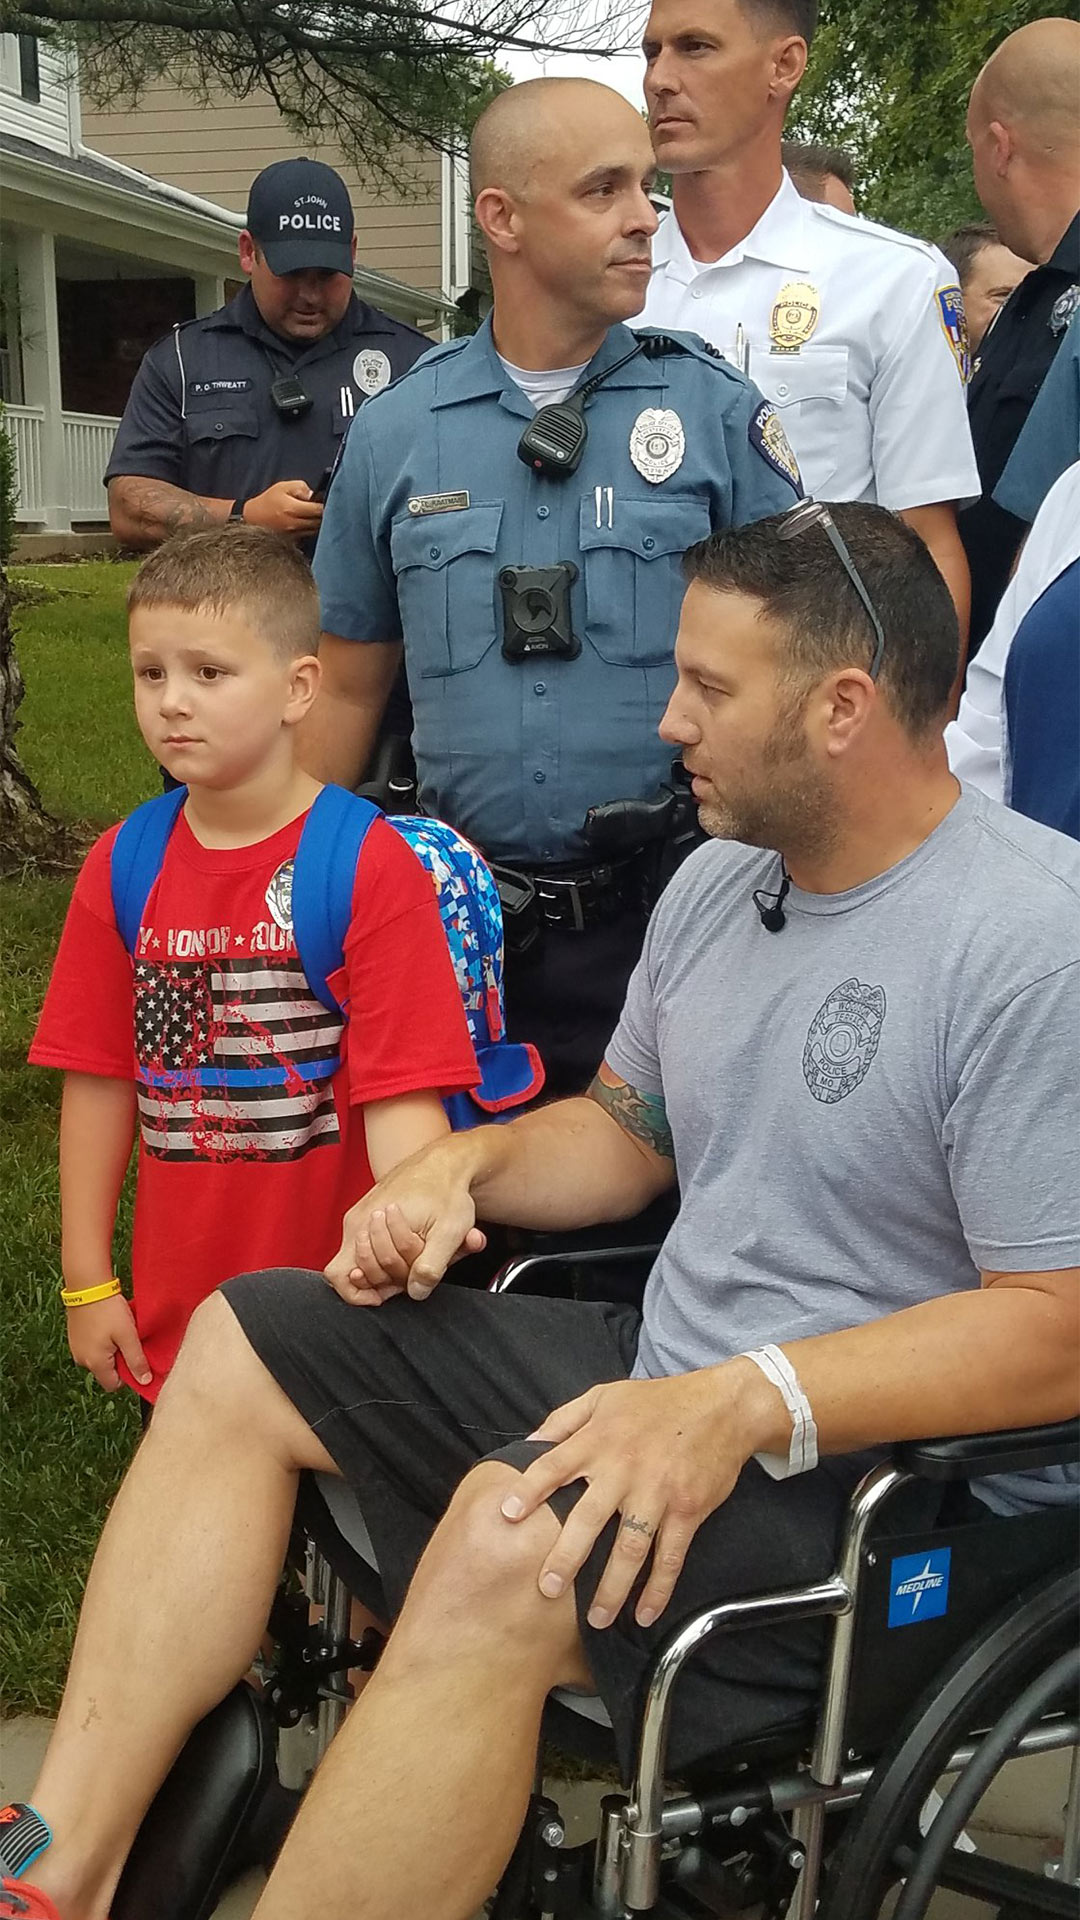 Police Officer Battling Cancer Leaves Hospital to Take Son Who Has Autism to First Day of School